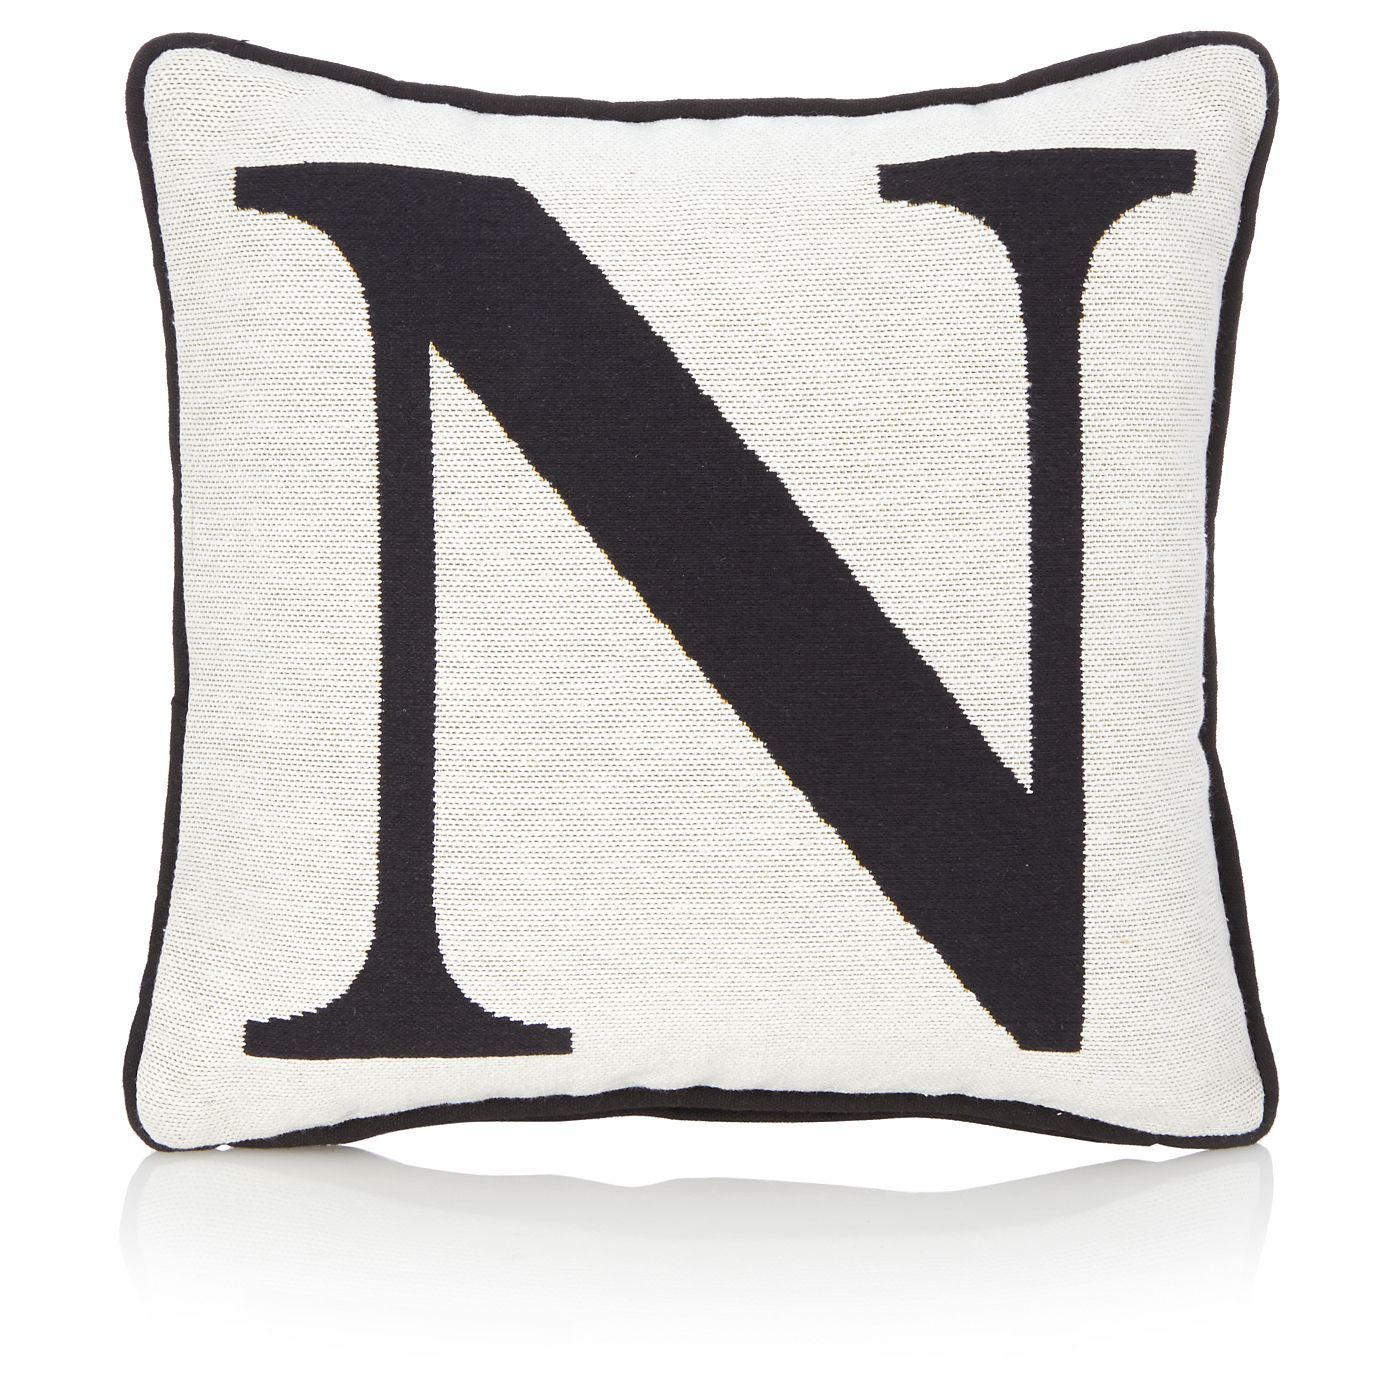 George Home Letter Z Cushion 30x30cm